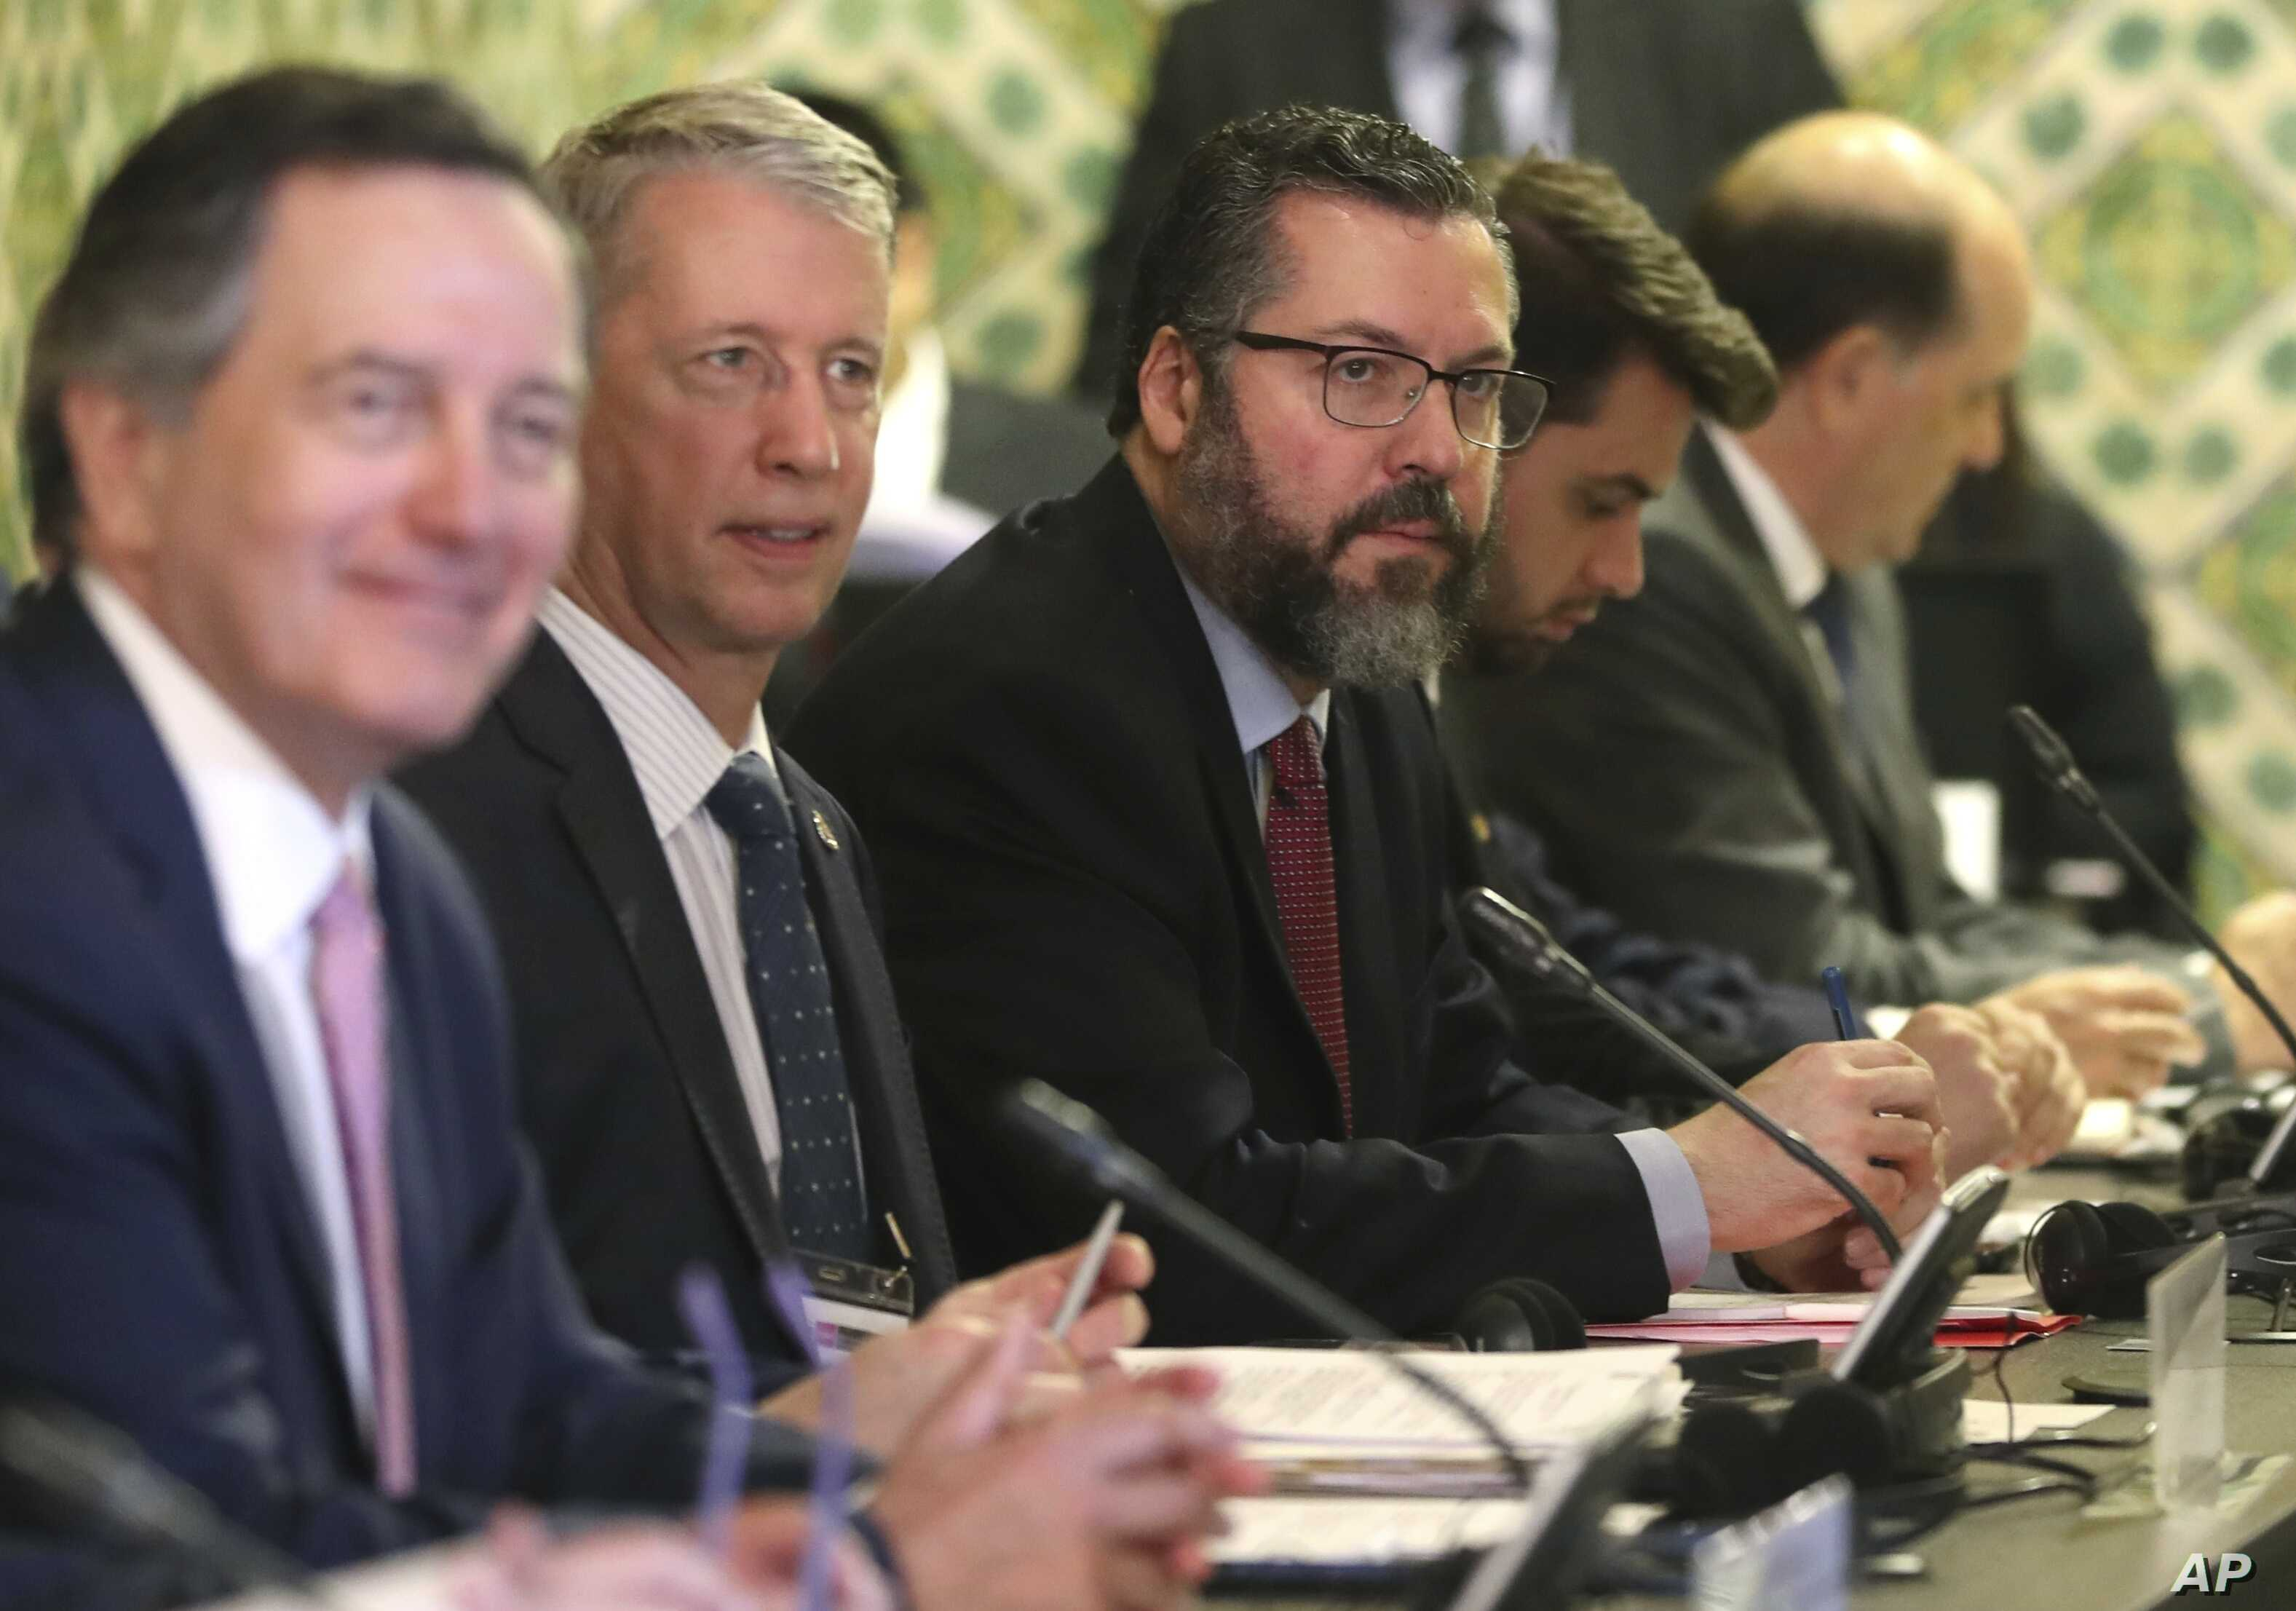 Brazil's Foreign Minister Ernesto Araujo, center, attends a meeting of the Lima Group concerning Venezuela in Lima, Peru, Jan. 4, 2019.